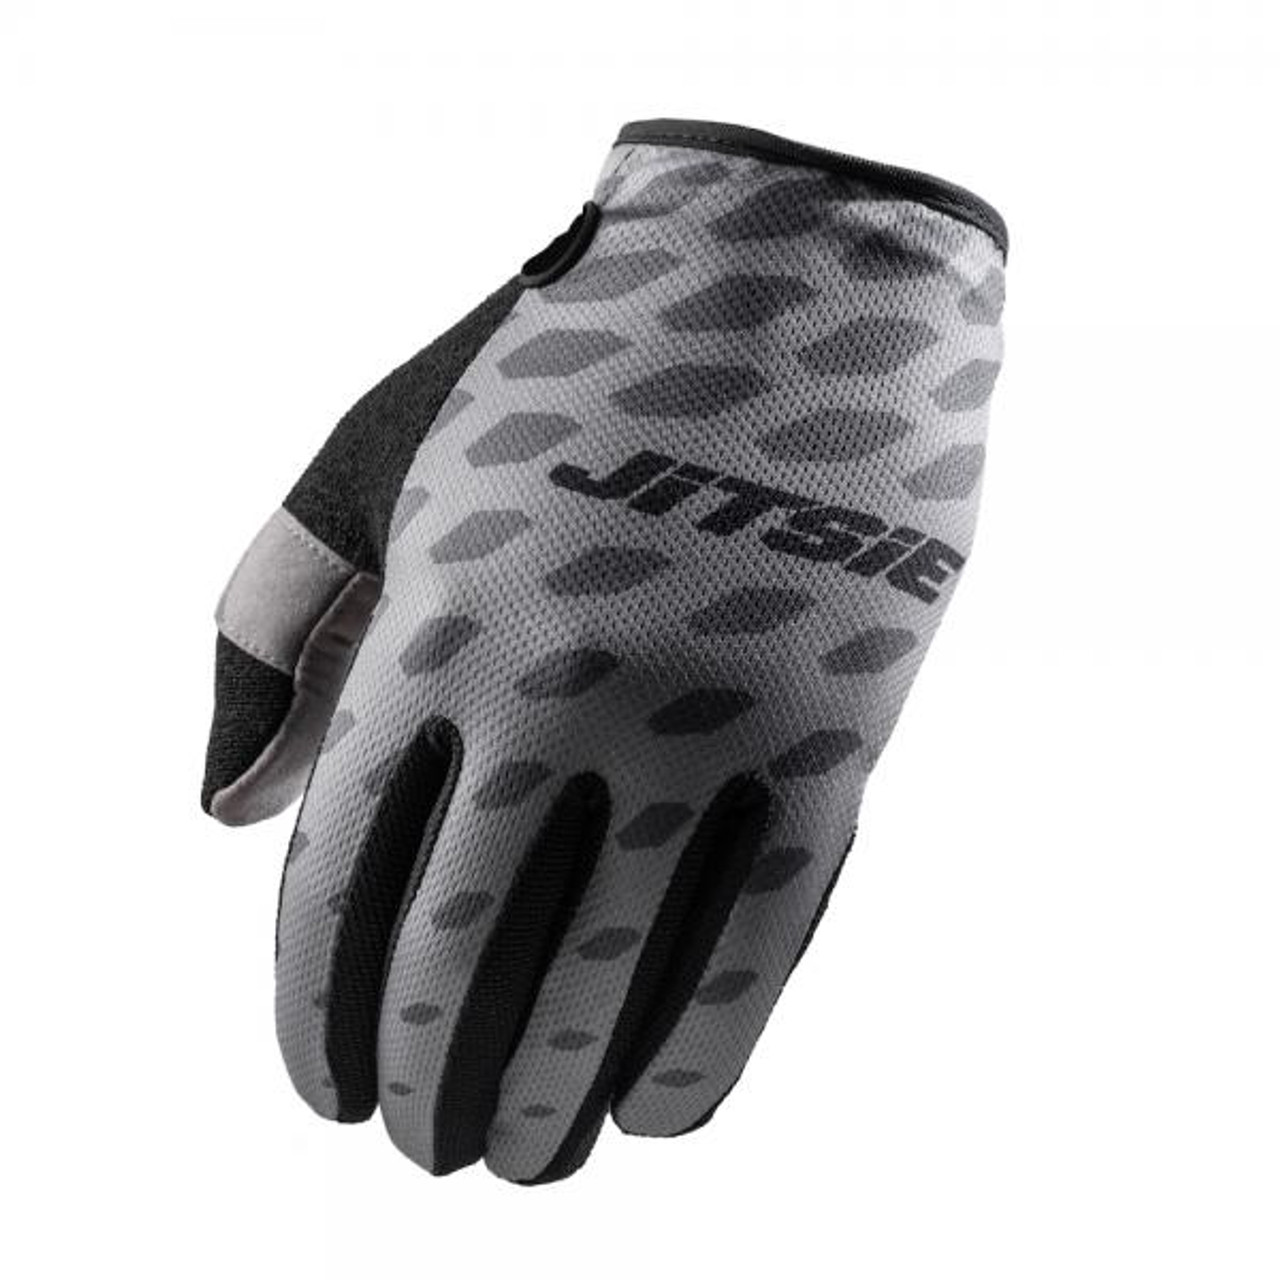 Gloves G2 Danjon, grey/ black